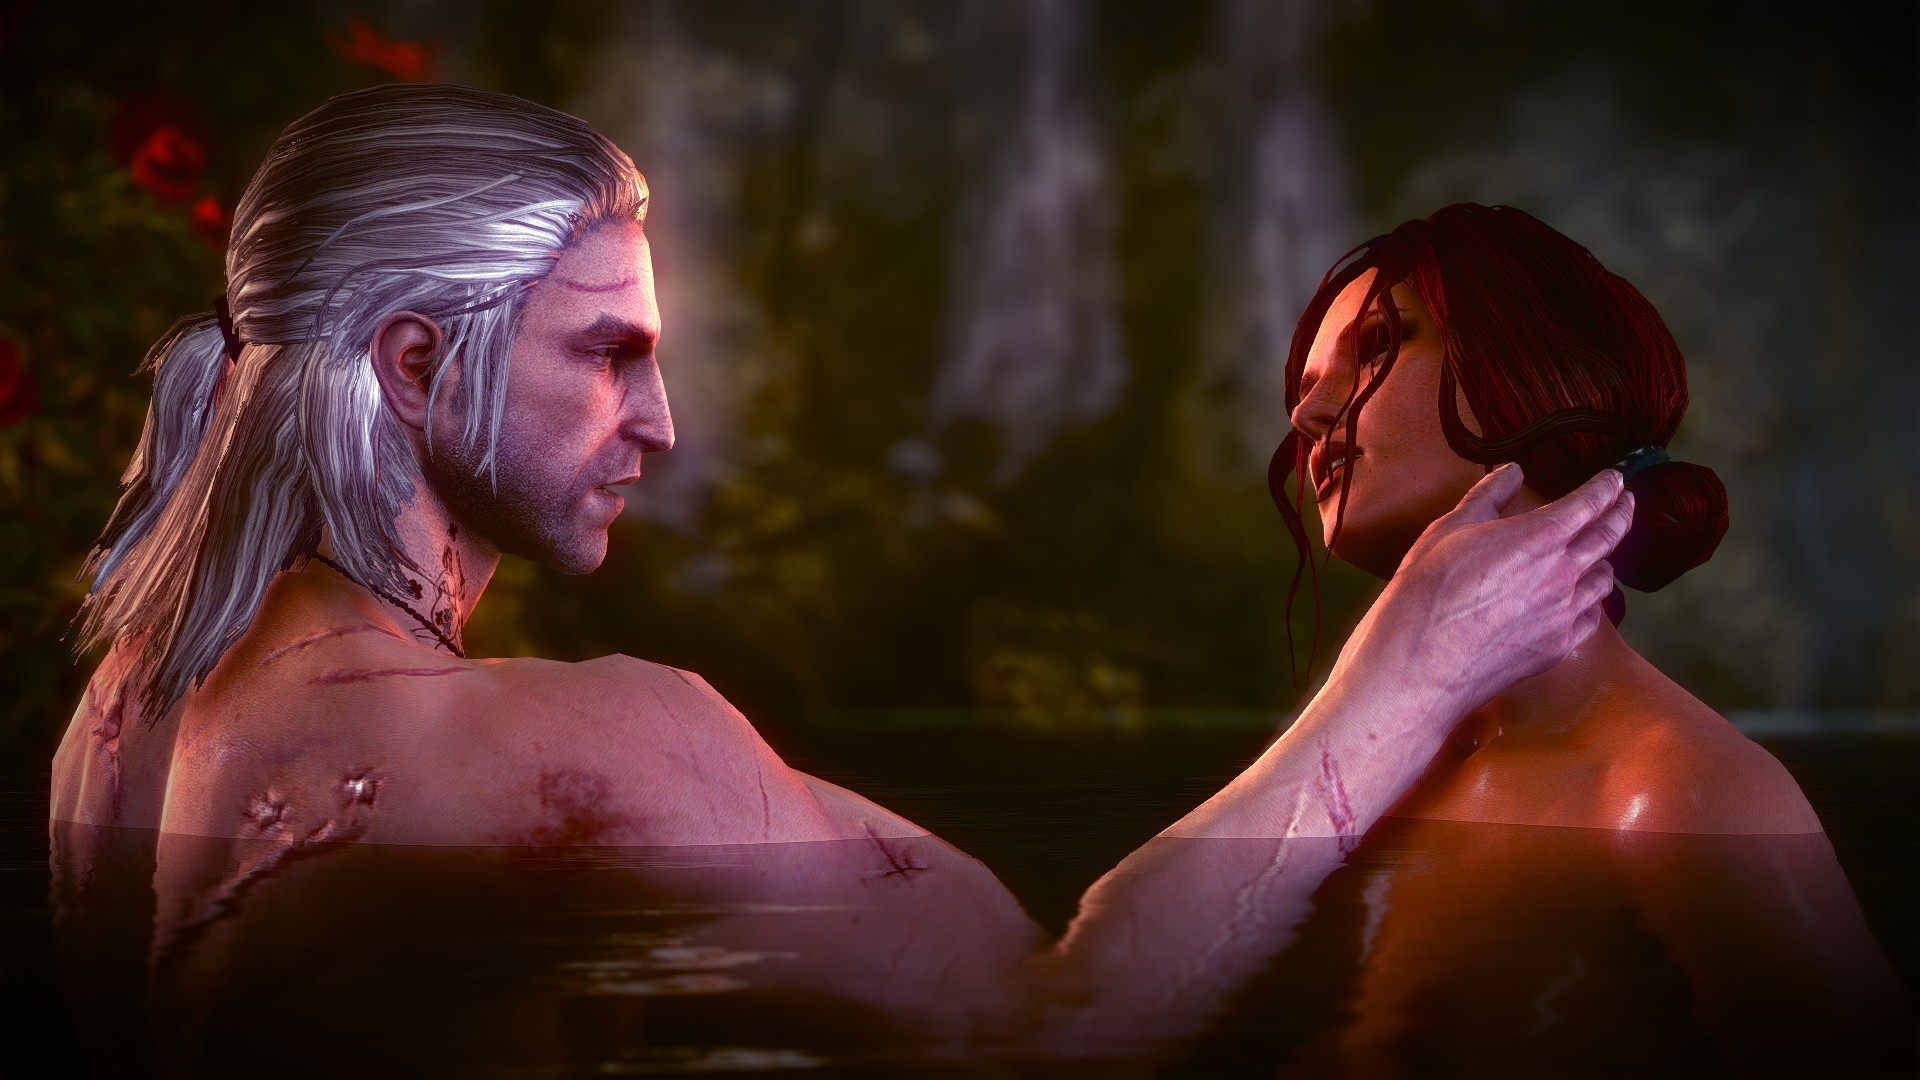 20190807190950_1.jpg - Witcher 2: Assassins of Kings, the Трисс